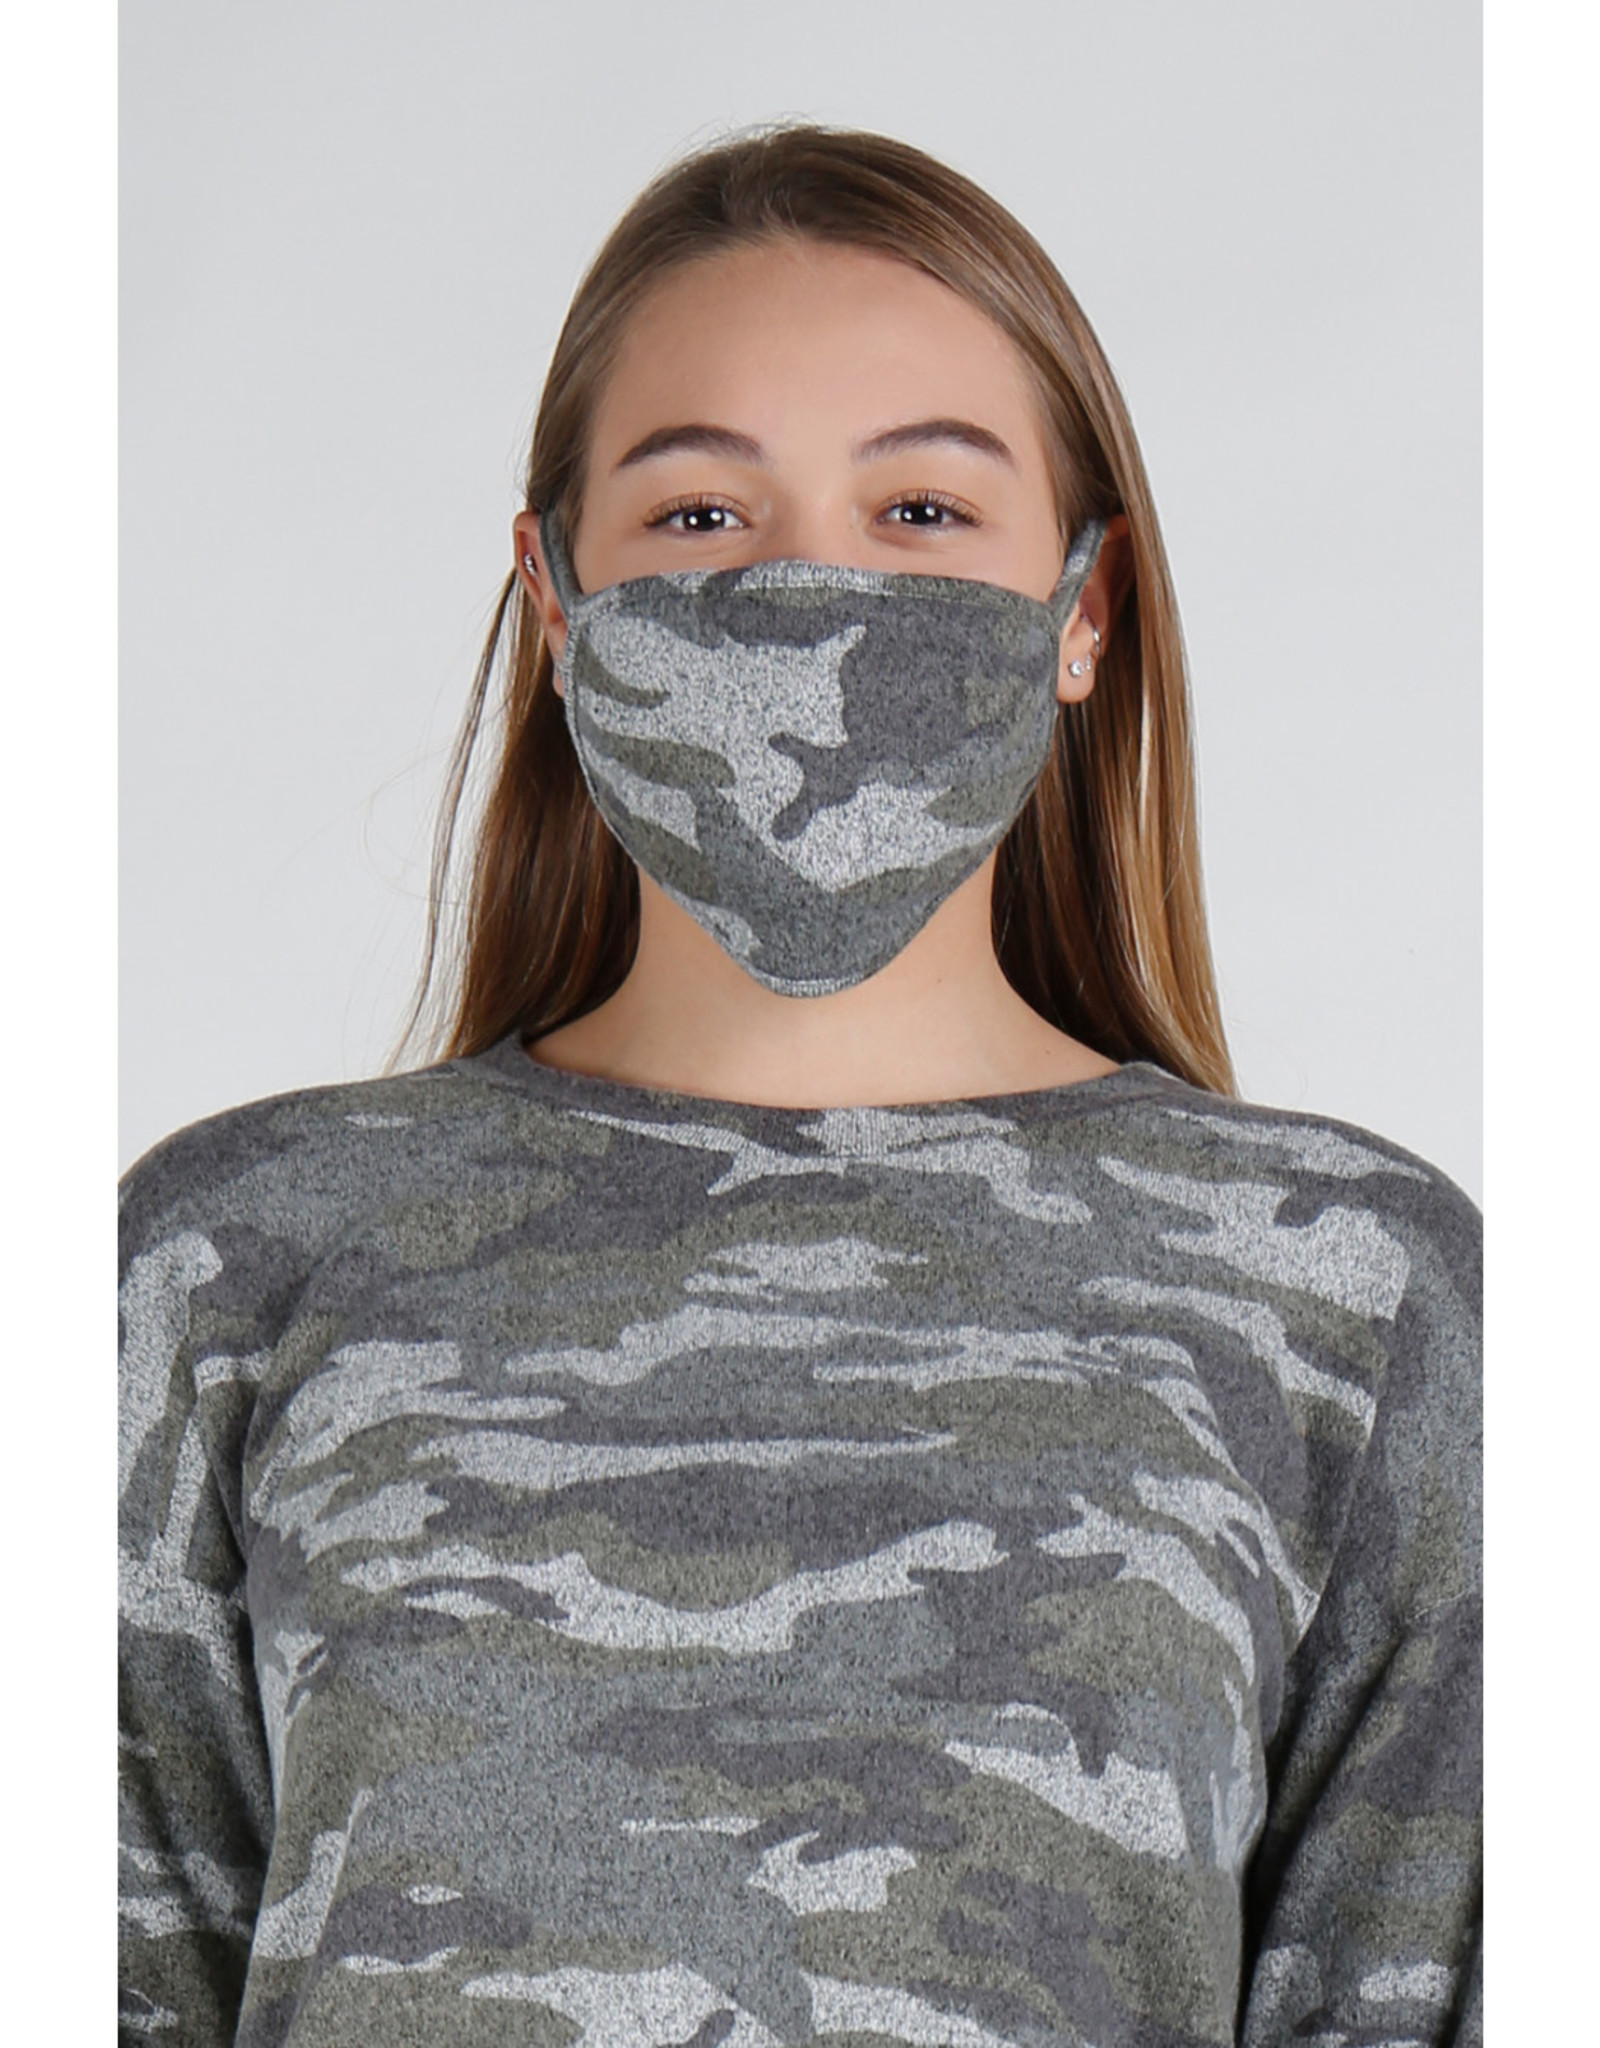 Relish Cozy Face Mask